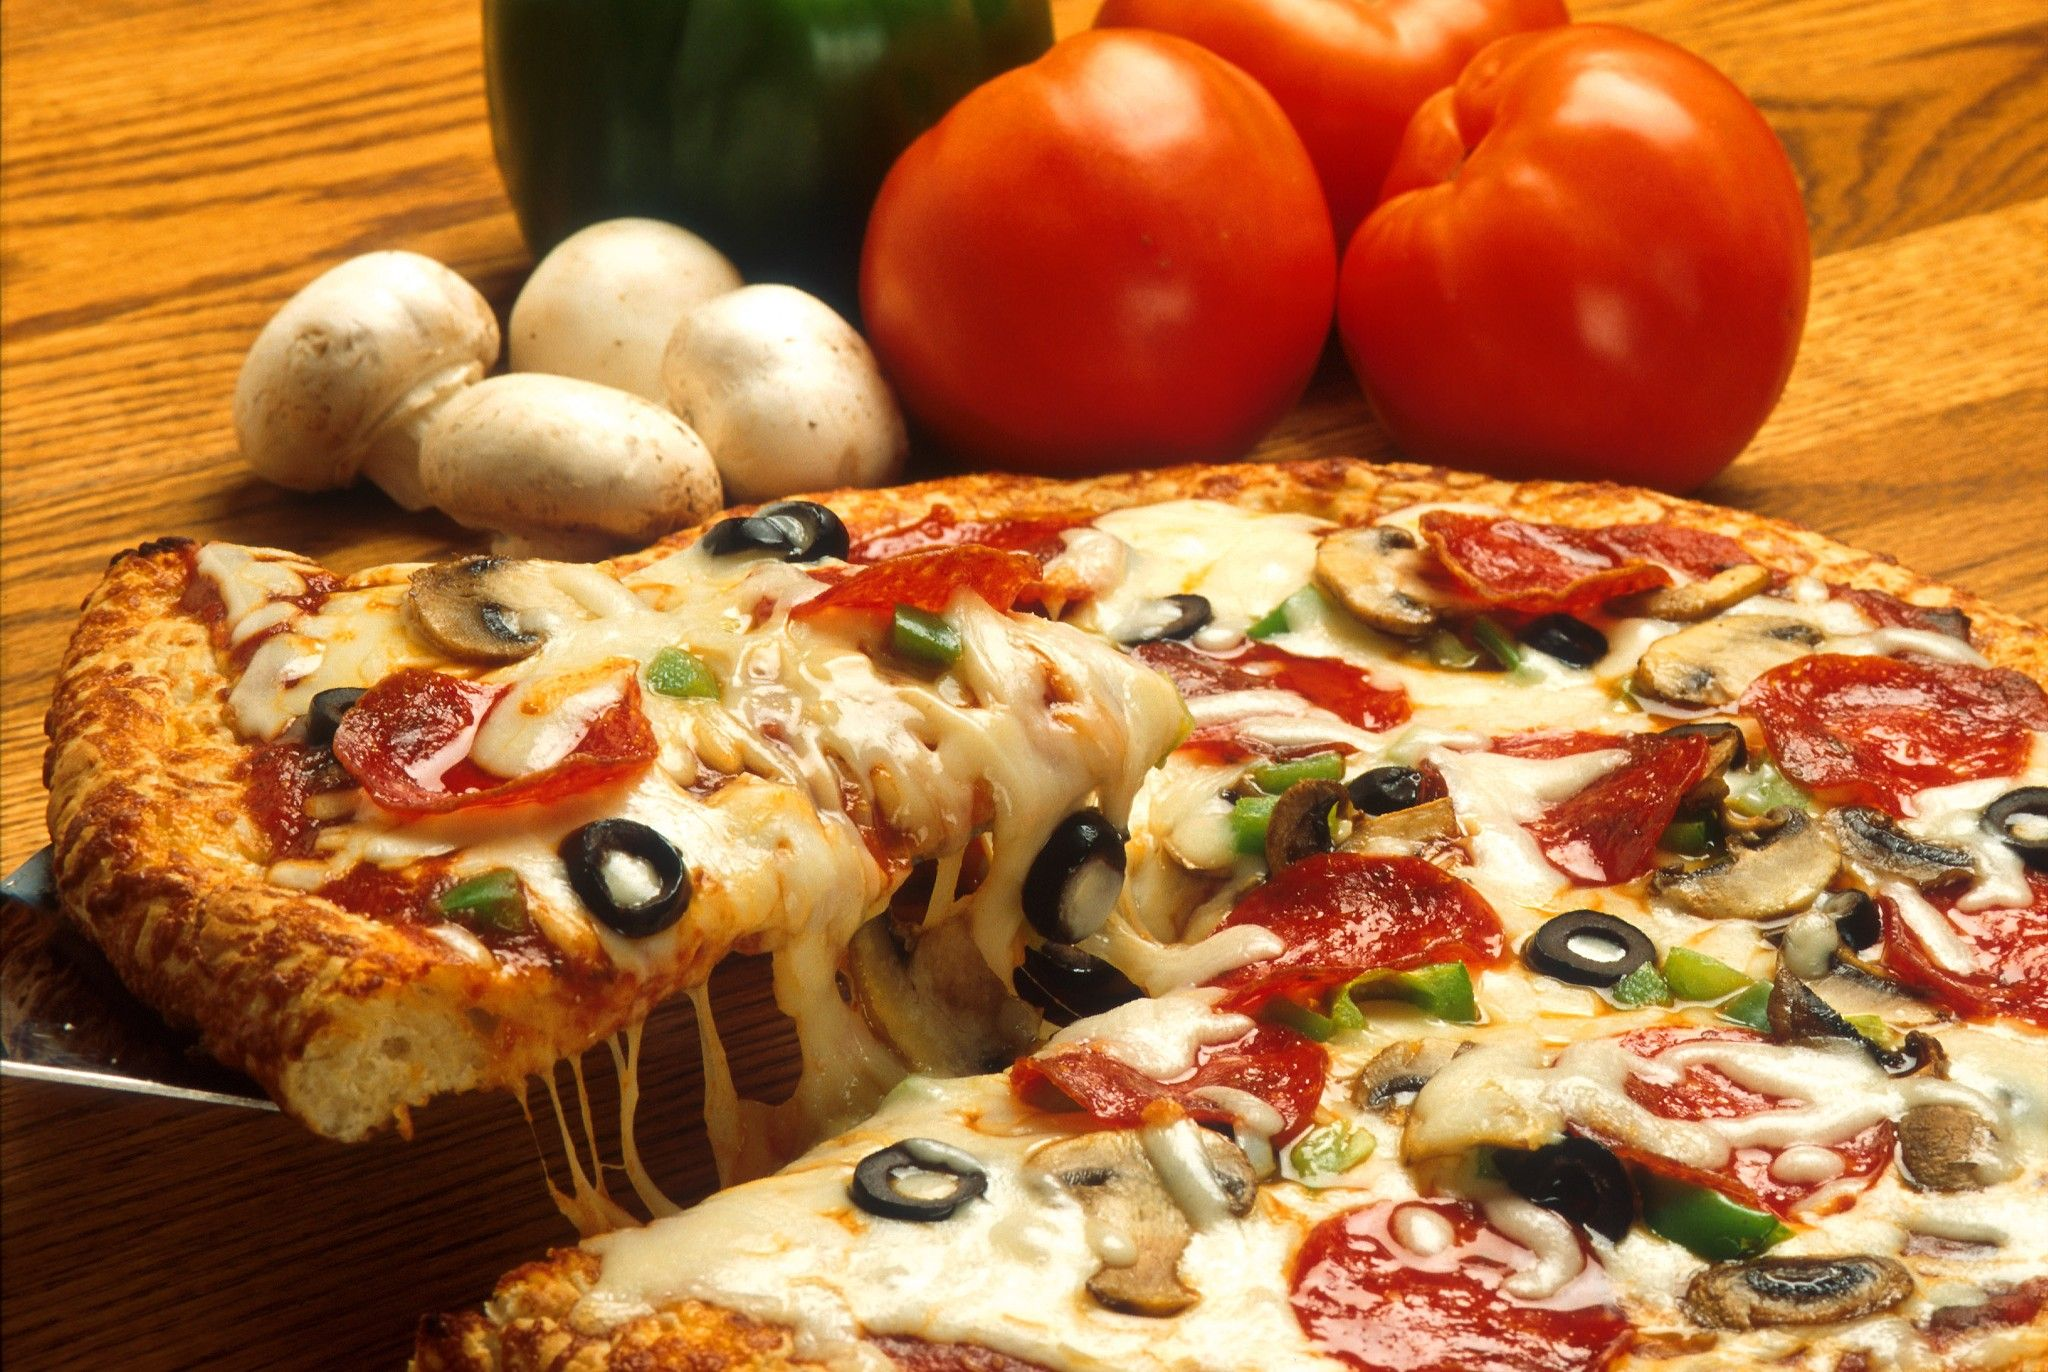 Pizza Take Out & Delivery For Sale in Calgary | Listing #317 | robcampbell.ca